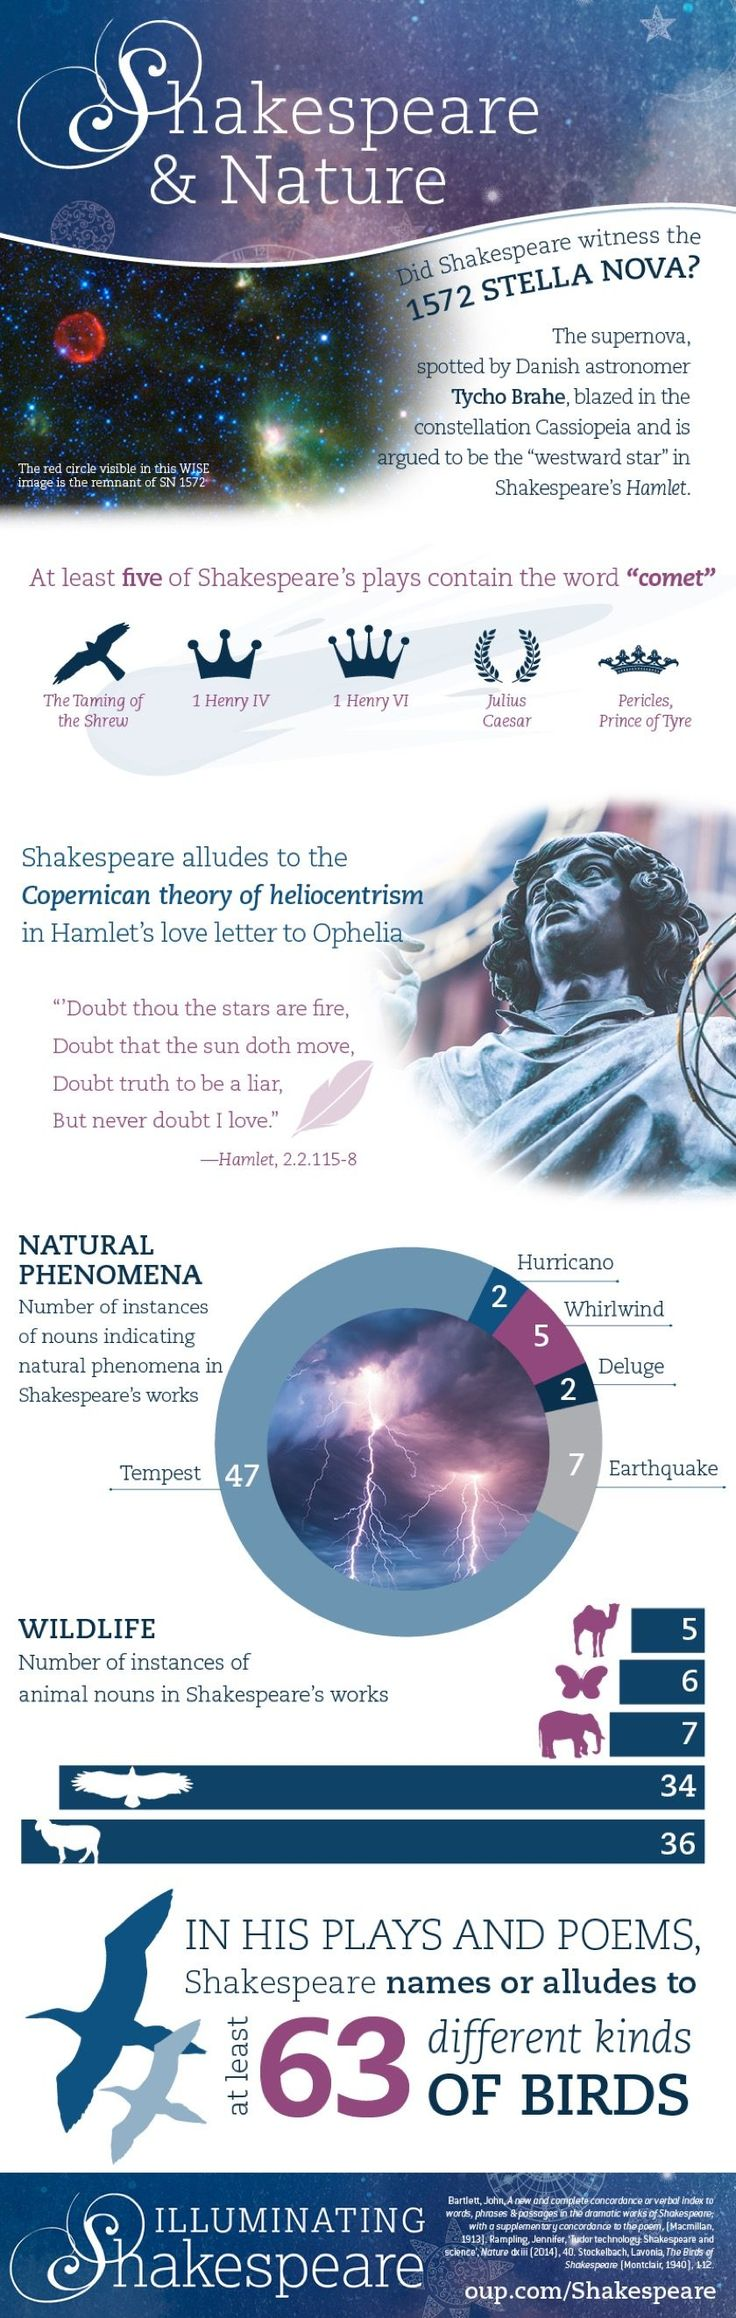 Infographic explains how nature influenced Shakespeare